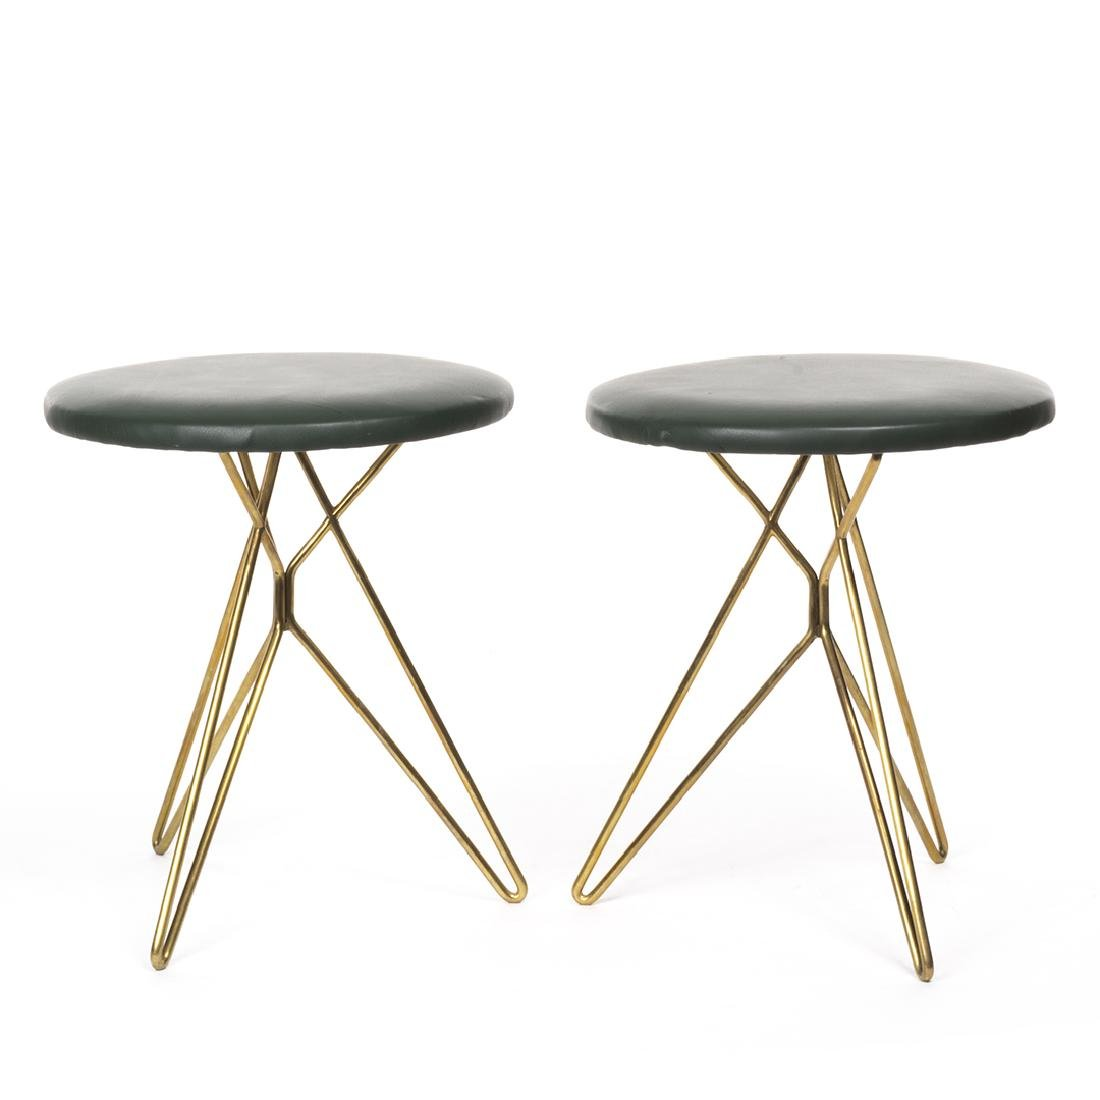 Italian leather and Brass Stools (2)